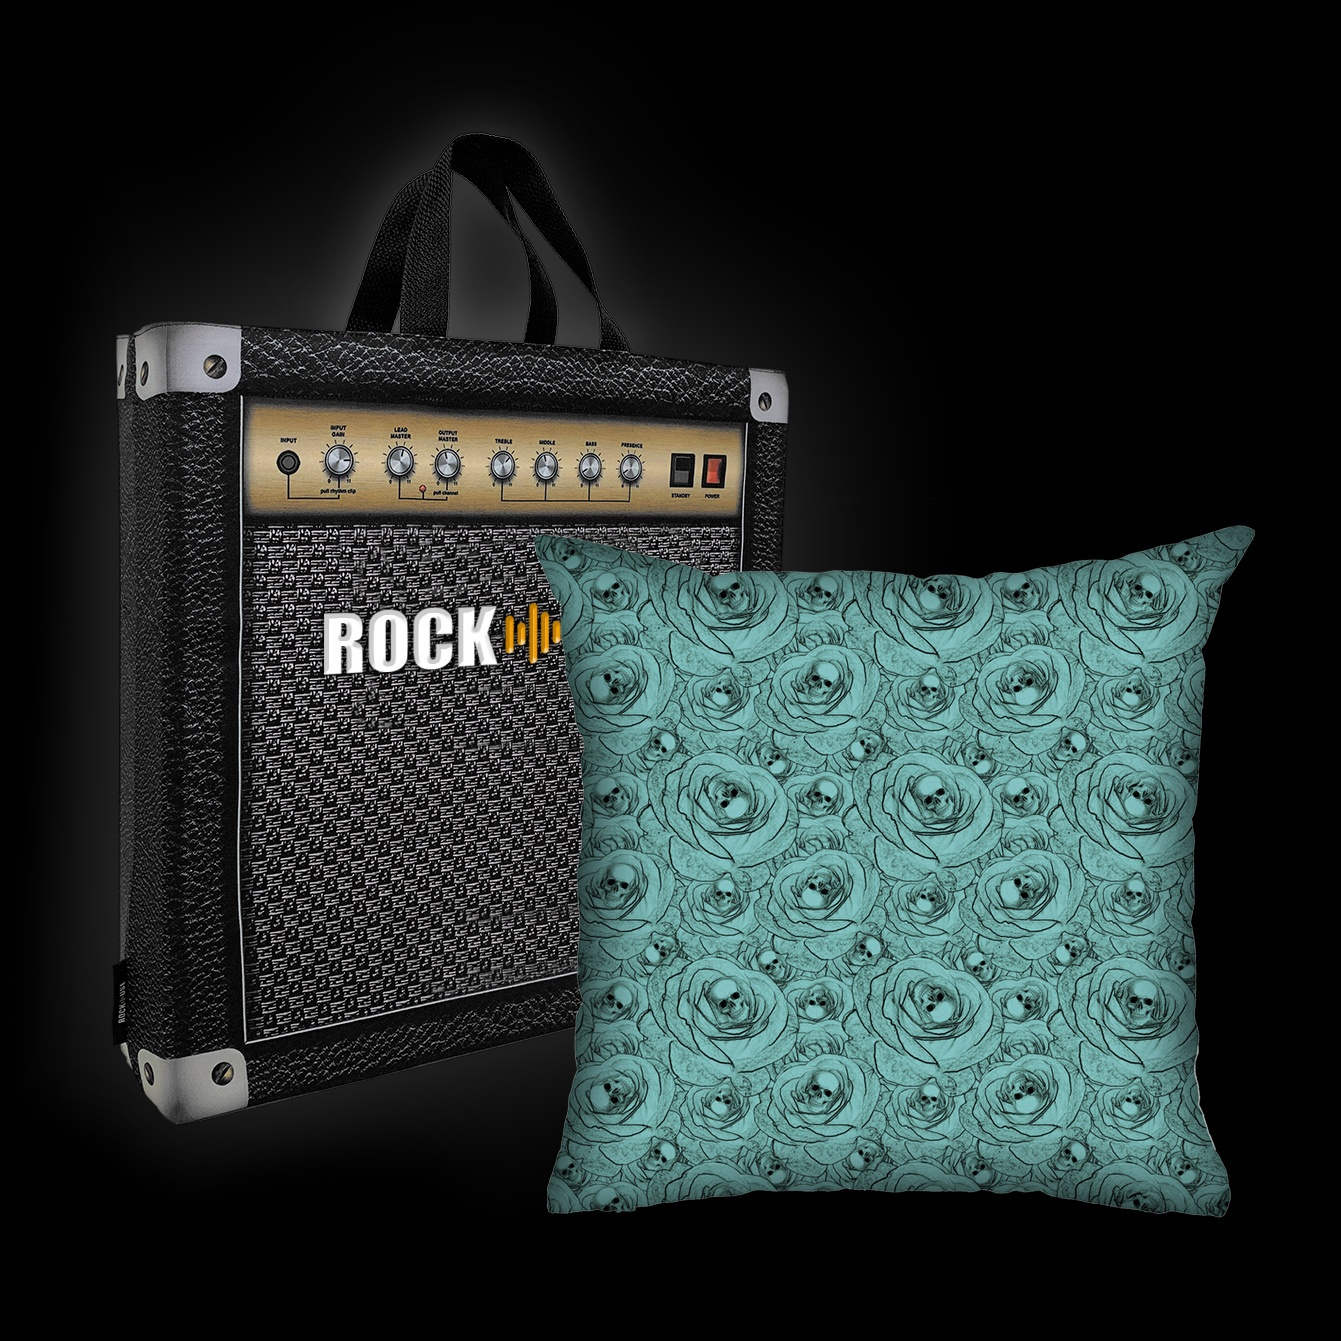 Almofada Rock Use - Skulls & Roses (Azul Tiffany)